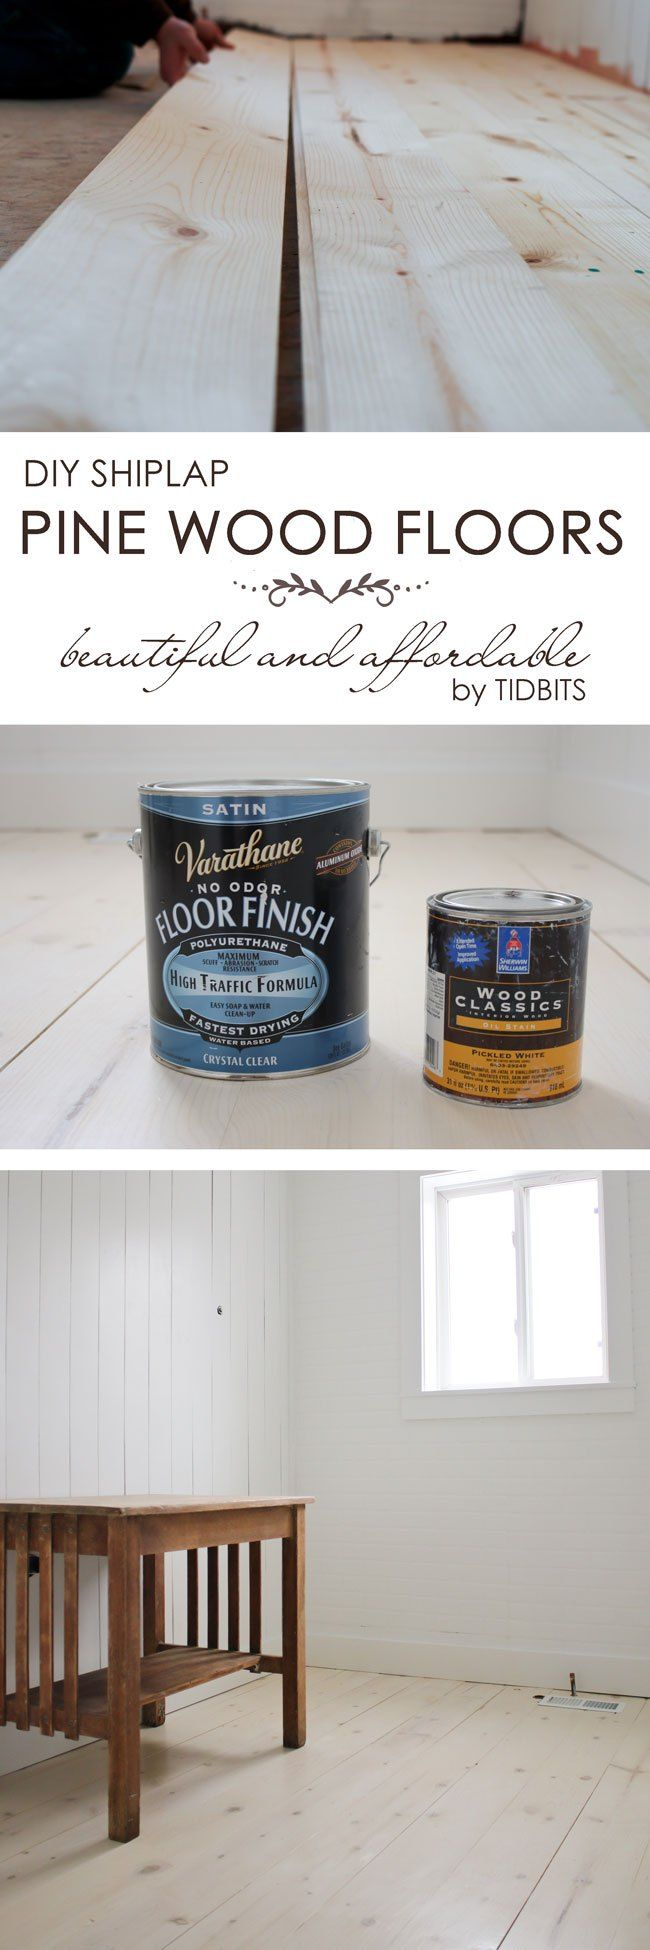 DIY Shiplap Pine Wood Floors - beautiful and affordable with a lovely whitewashed look!